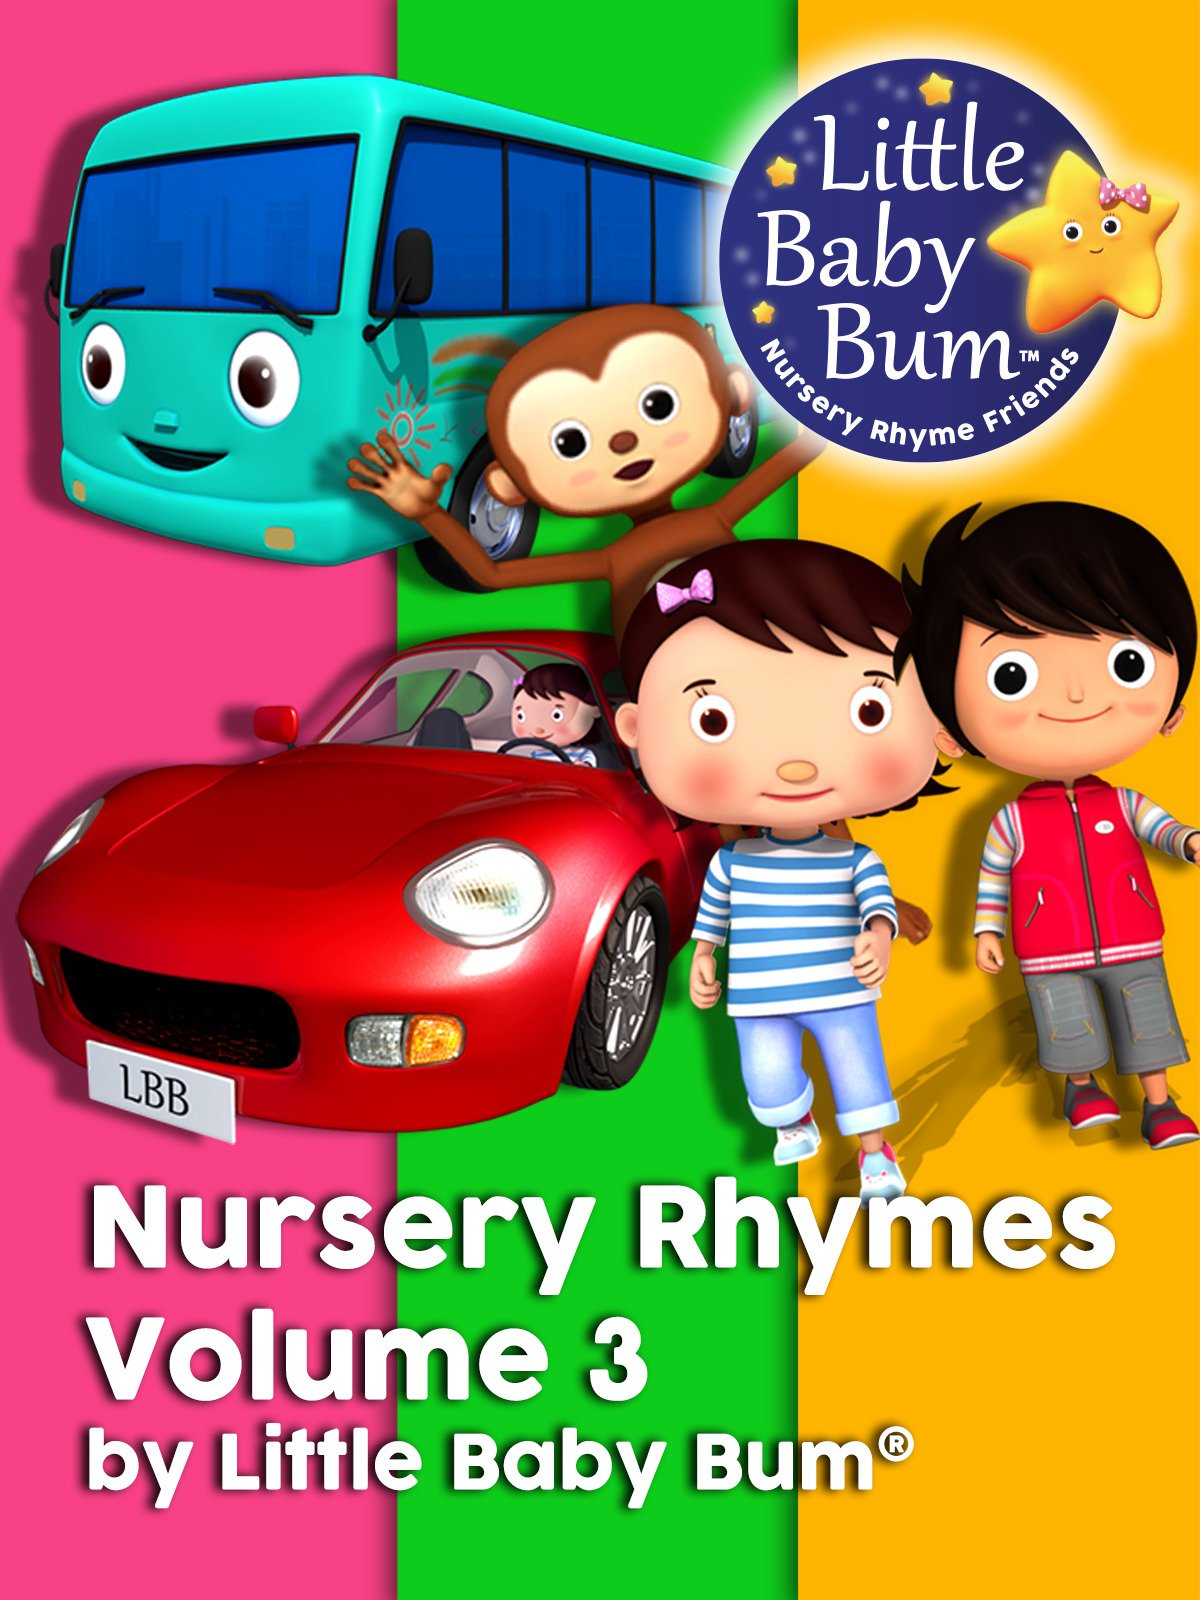 Nursery Rhymes Volume 3 by Little Baby Bum